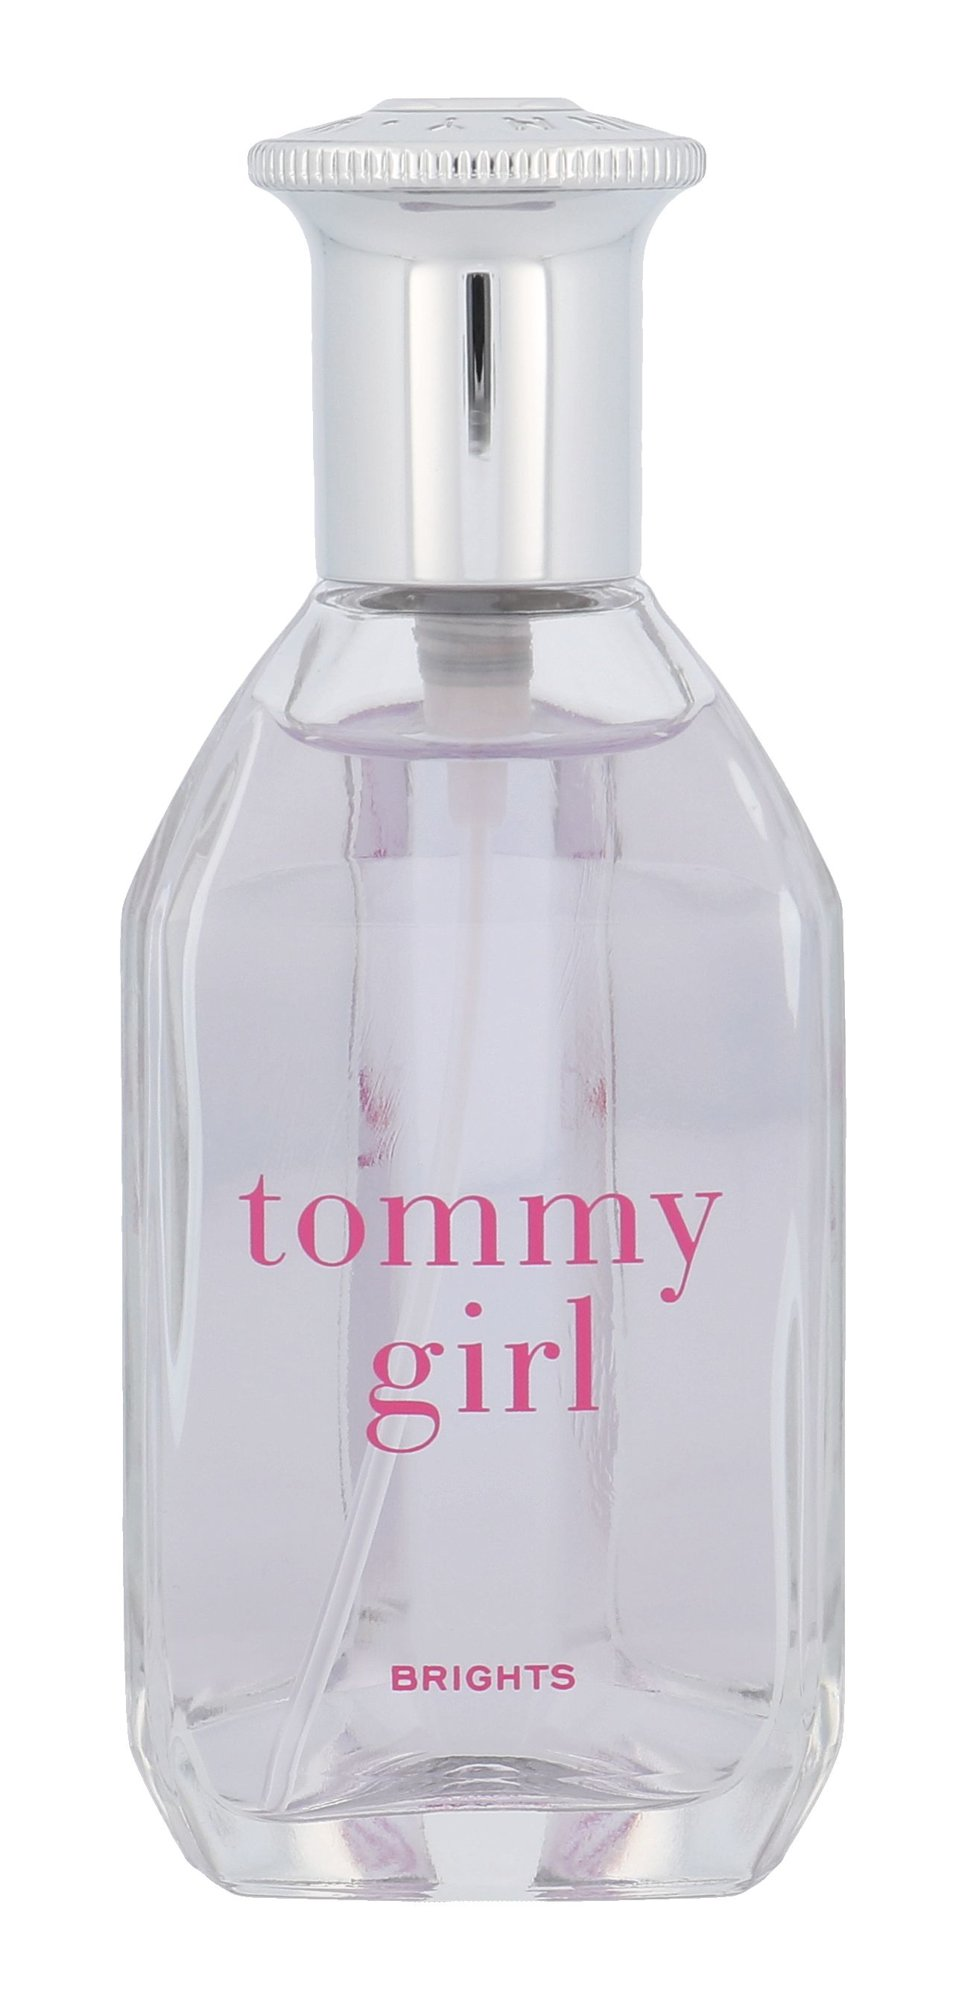 Tommy Hilfiger Tommy Girl Neon Brights EDT 50ml